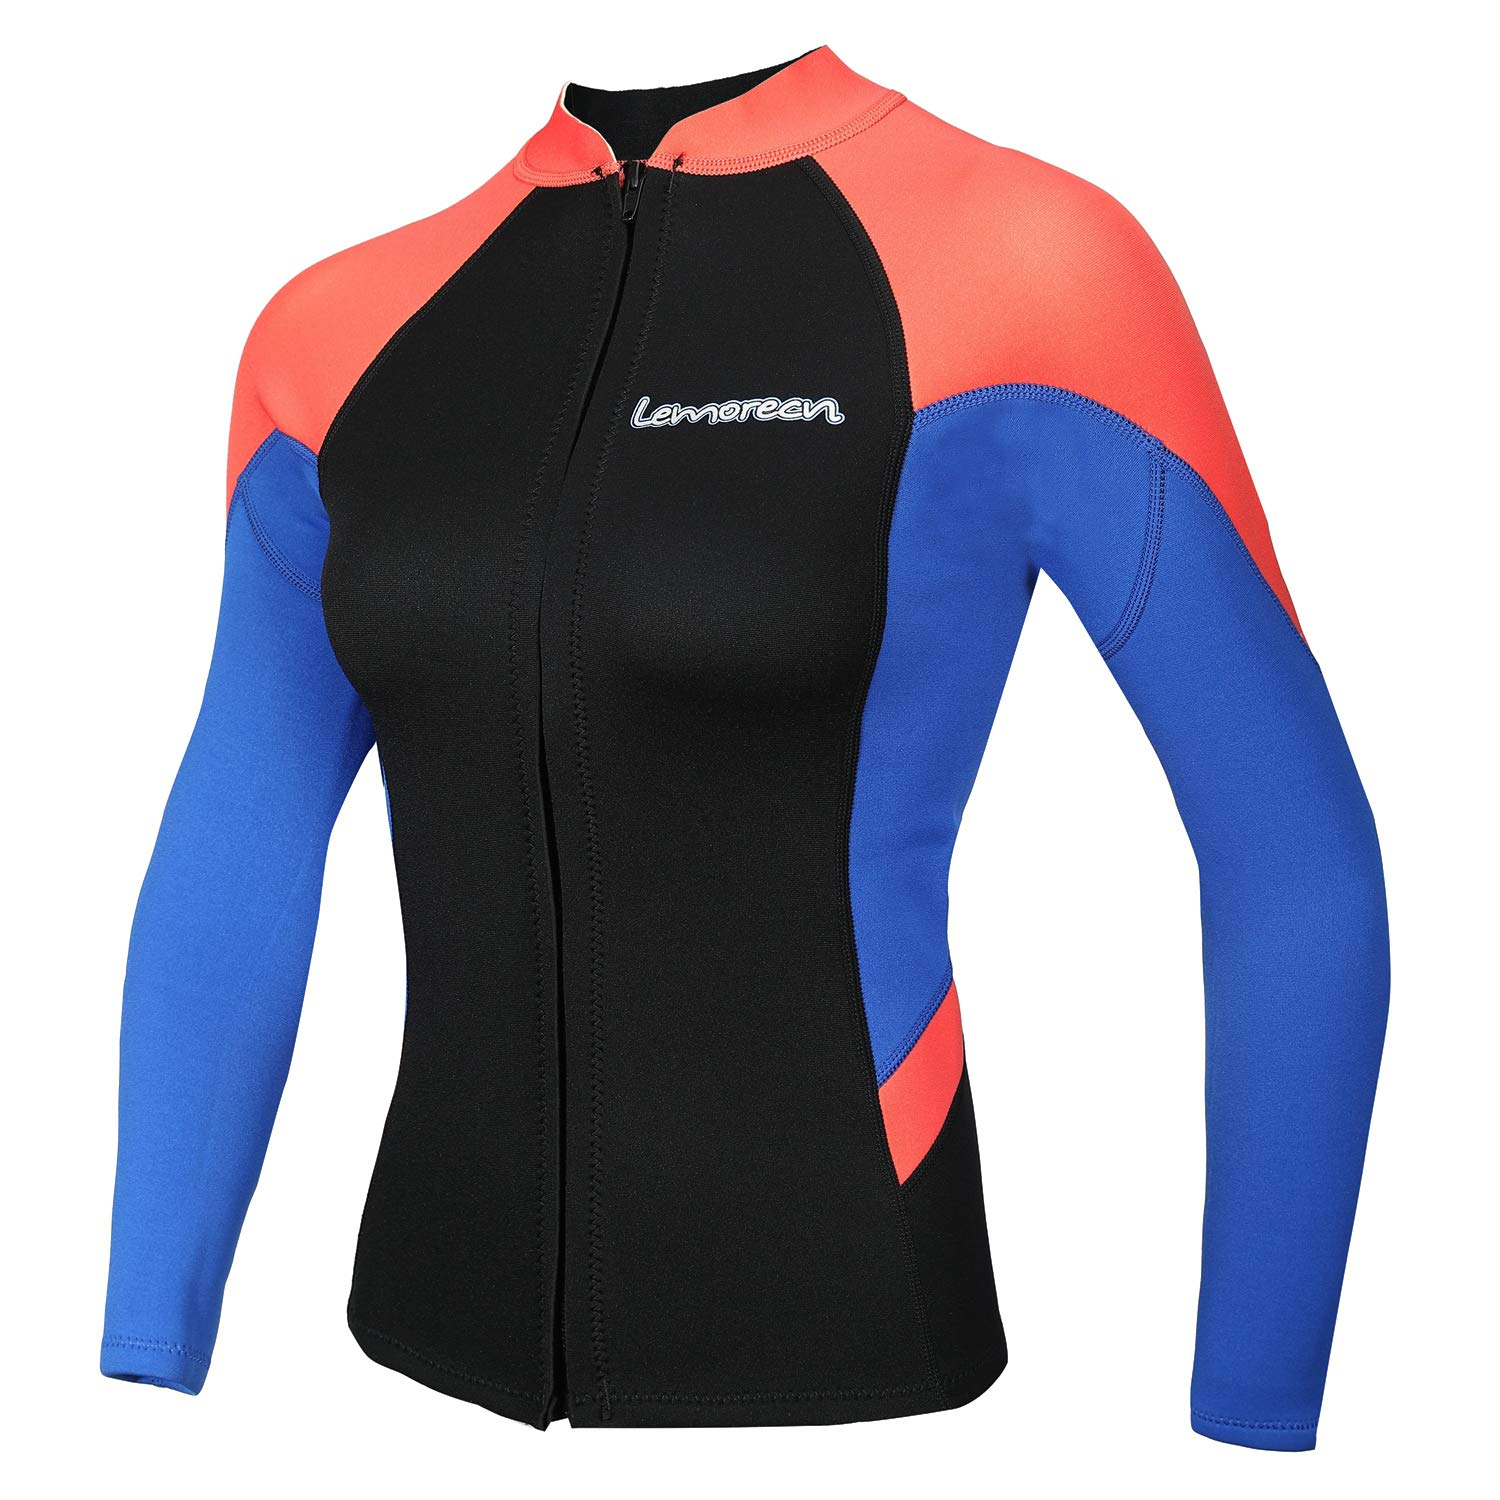 Lemorecn Women's 2mm Wetsuits Jacket Long Sleeve Neoprene Wetsuits Top (2096bluered-10) by Lemorecn